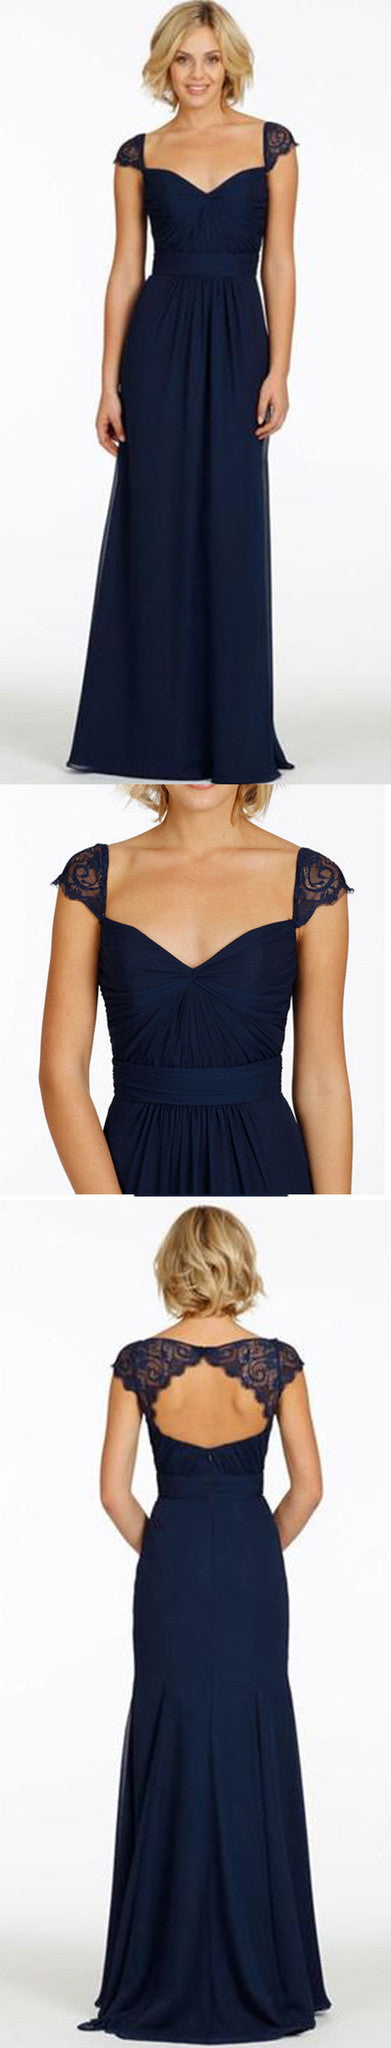 Cap Sleeve Open Back Sweet Heart Navy Blue Cheap Bridesmaid Dresses, BG51066 - Bubble Gown